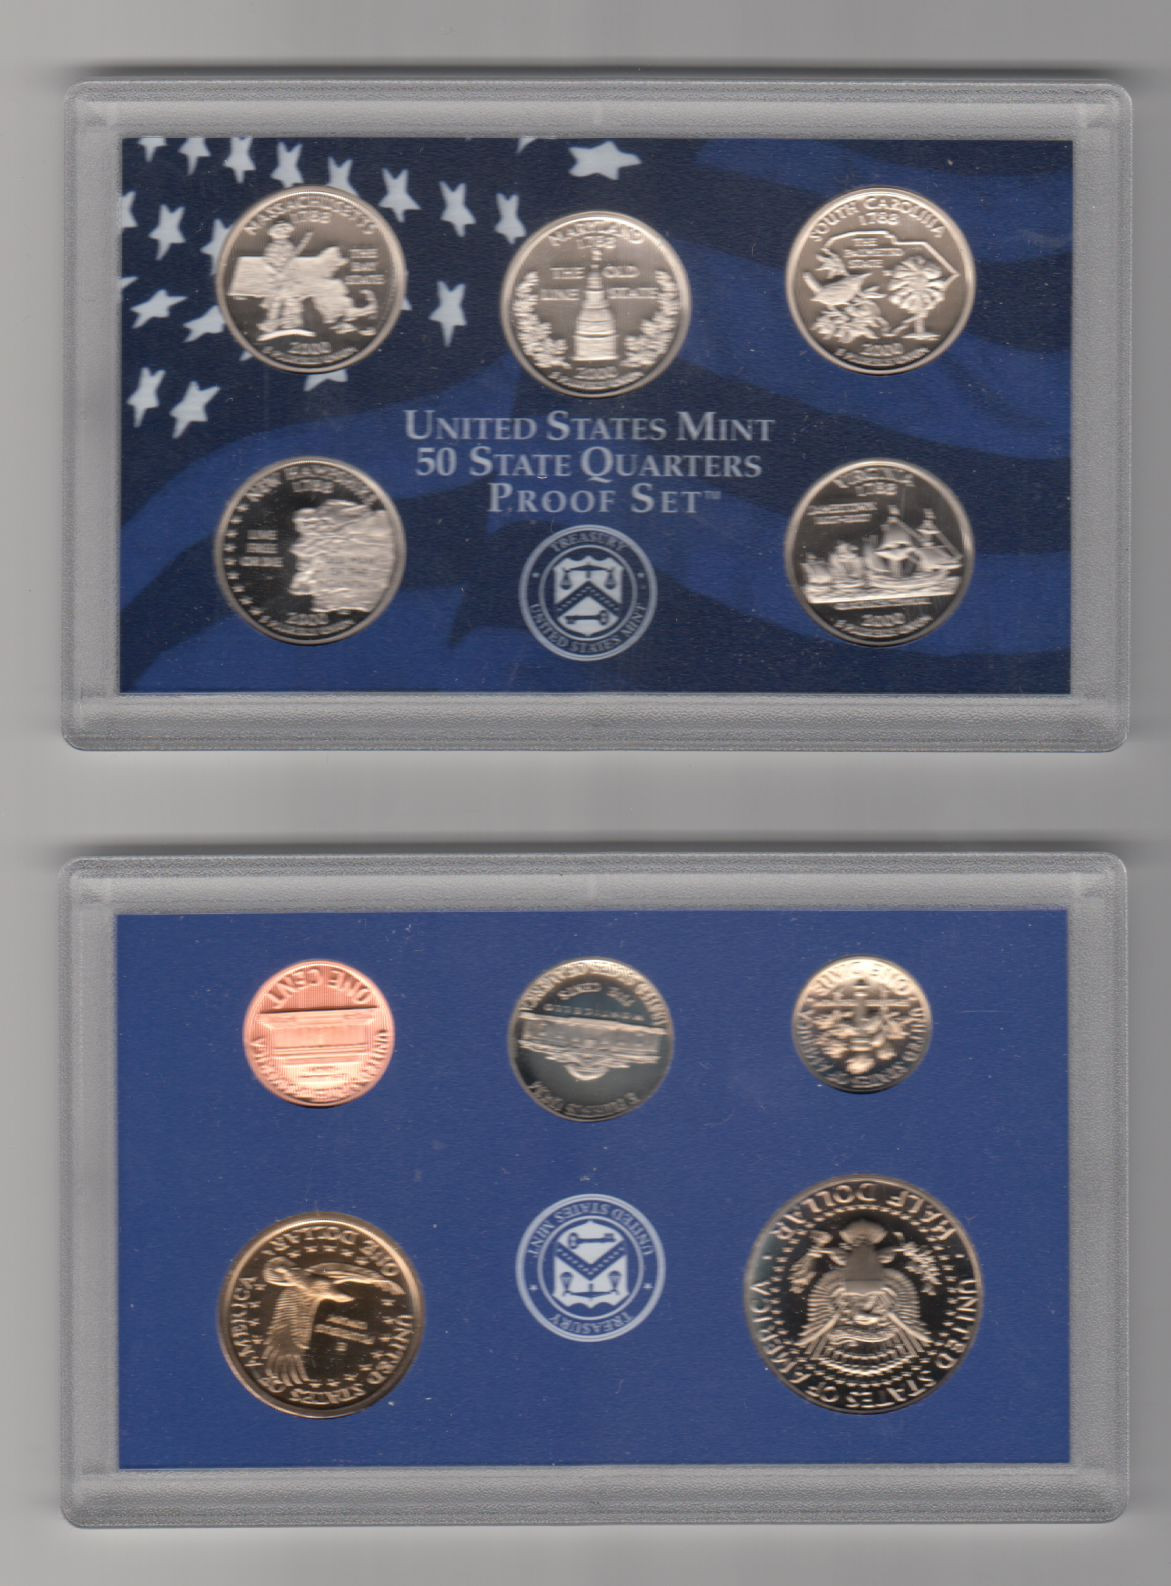 Awesome 10 Coins 50 State Quarters Proof Set Us Mint 2000 State Quarter Set Value Of Unique 5 Coins 50 State Quarters Proof Set Us Mint 2000 State Quarter Set Value